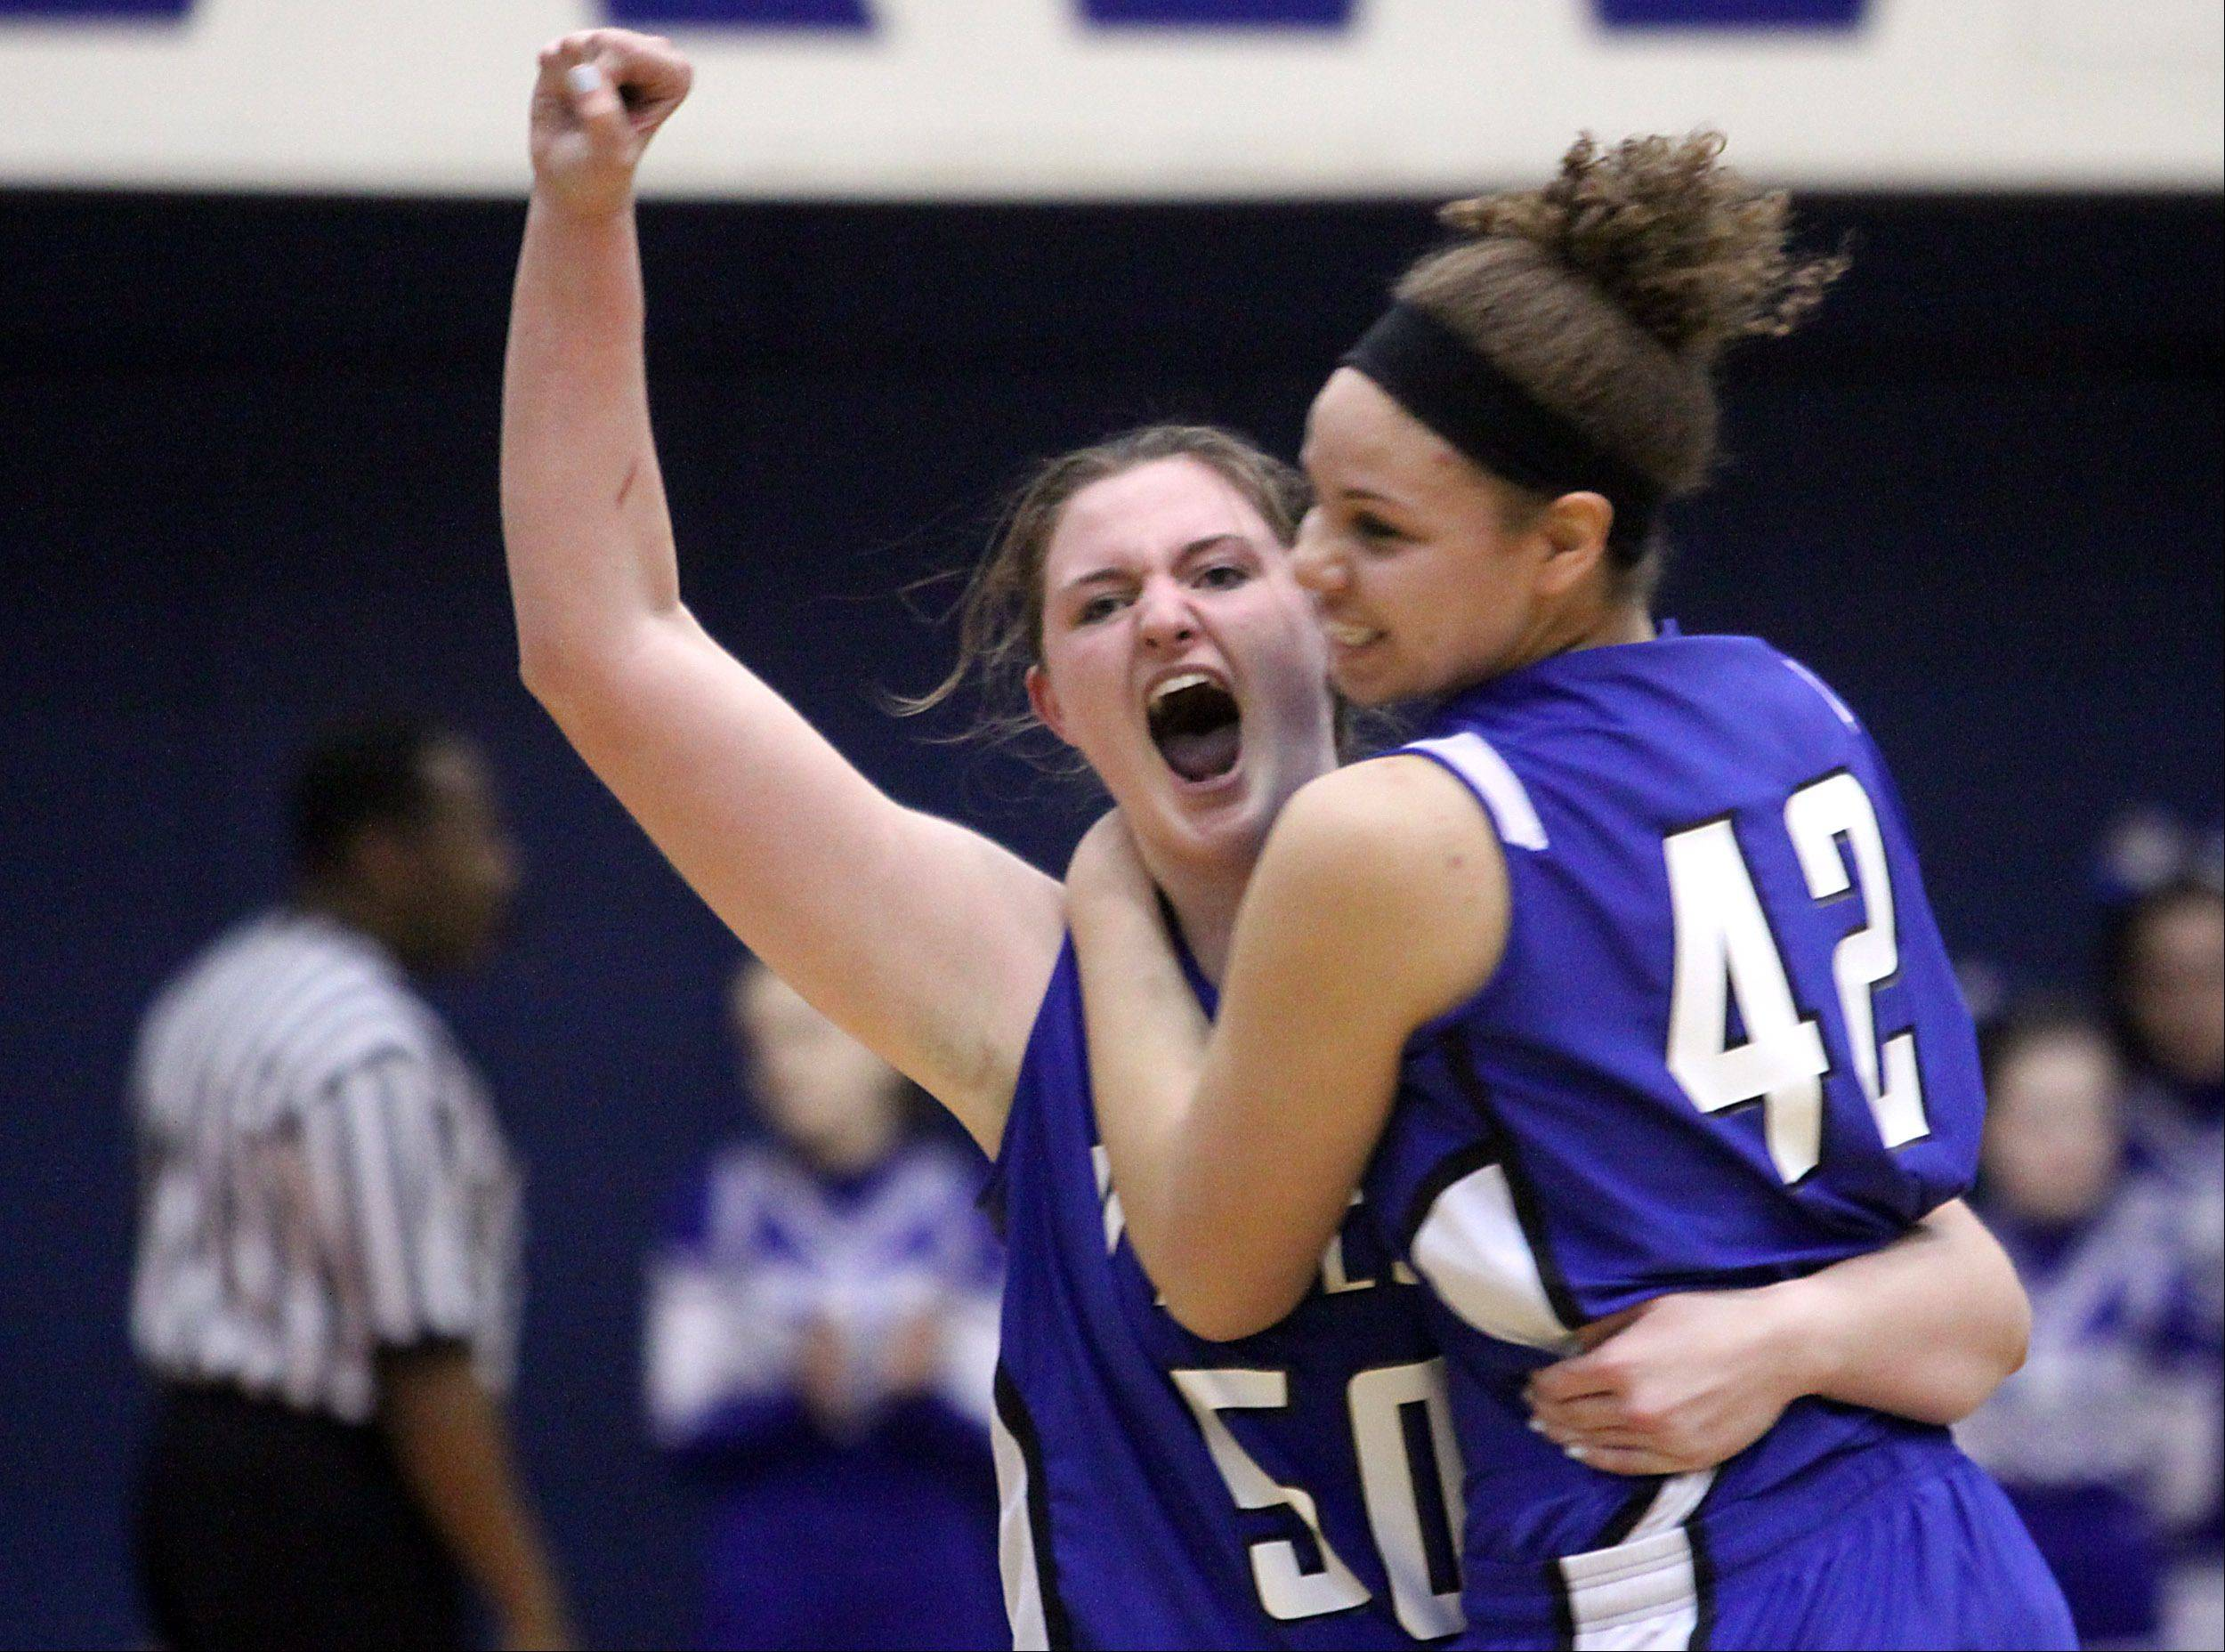 Vernon Hills players Meri Bennett-Swanson, left, and Lauren Webb celebrate their 39-31 Class 3A supersectional win over Burlington Central at Hoffman Estates High School on Monday night. The Cougars advance to the finals of the state tournament this weekend at Redbird Arena in Bloomington.